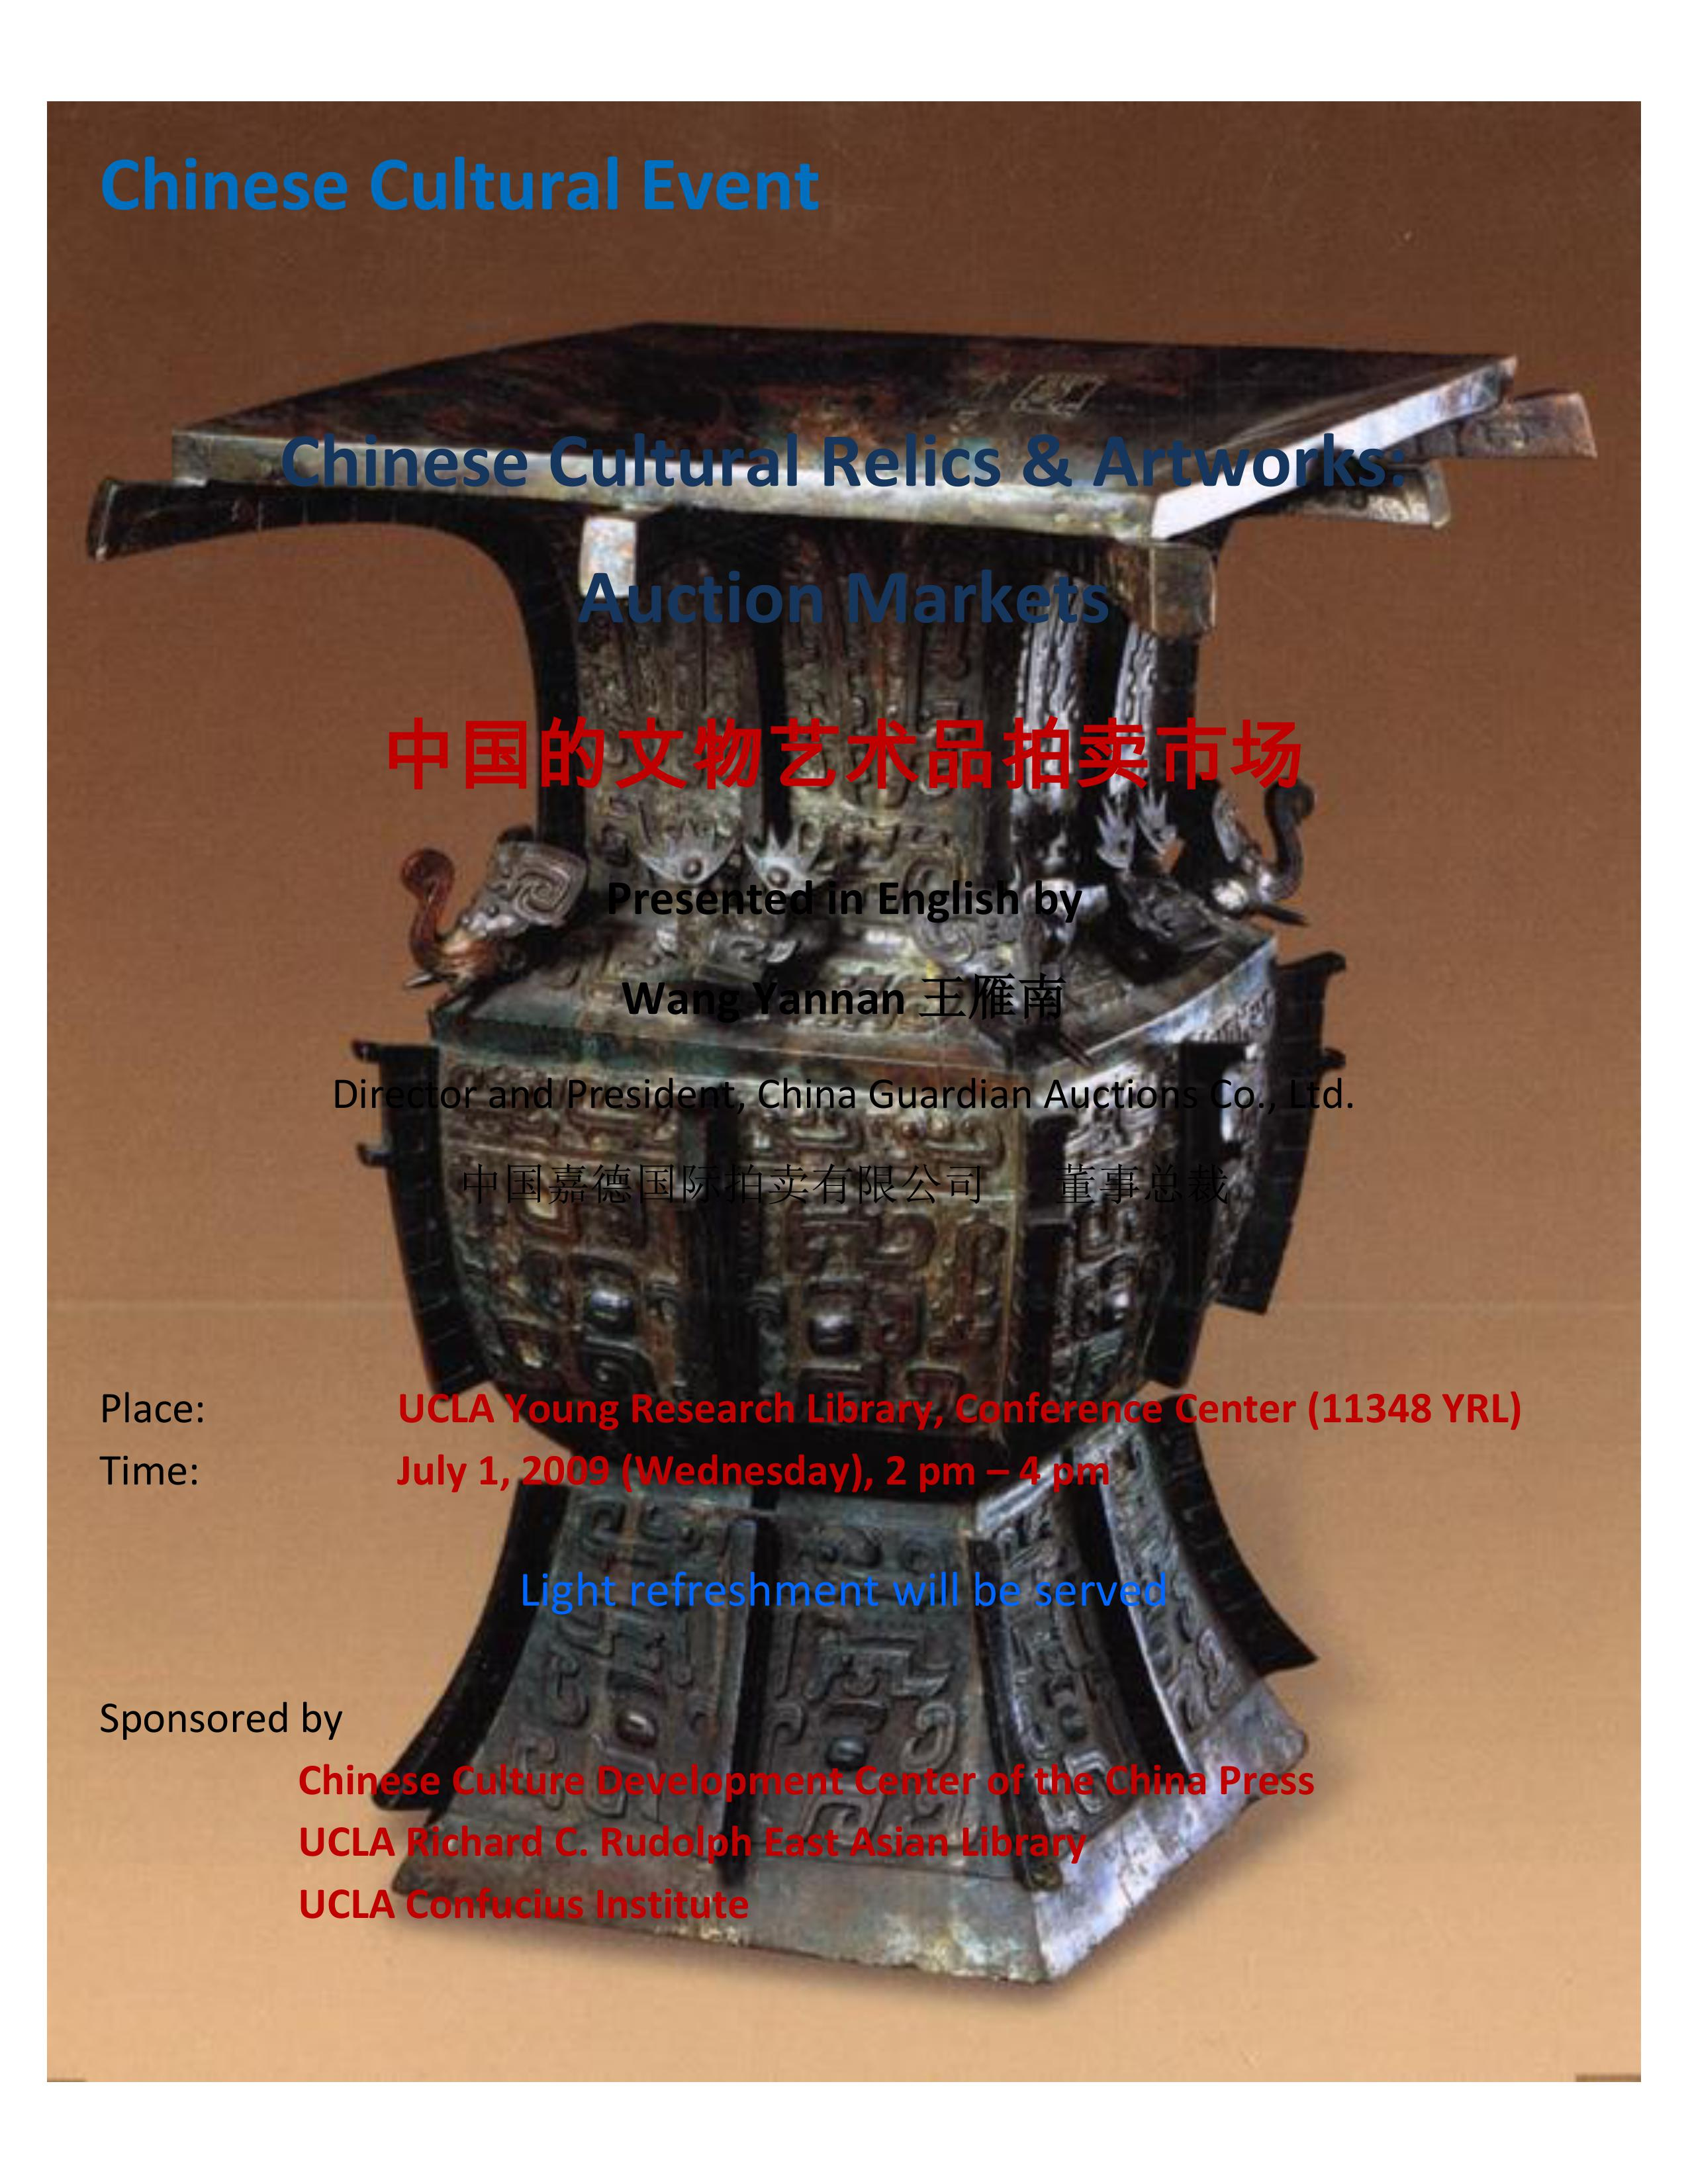 Chinese Cultural Relics & Artworks: Auction Markets